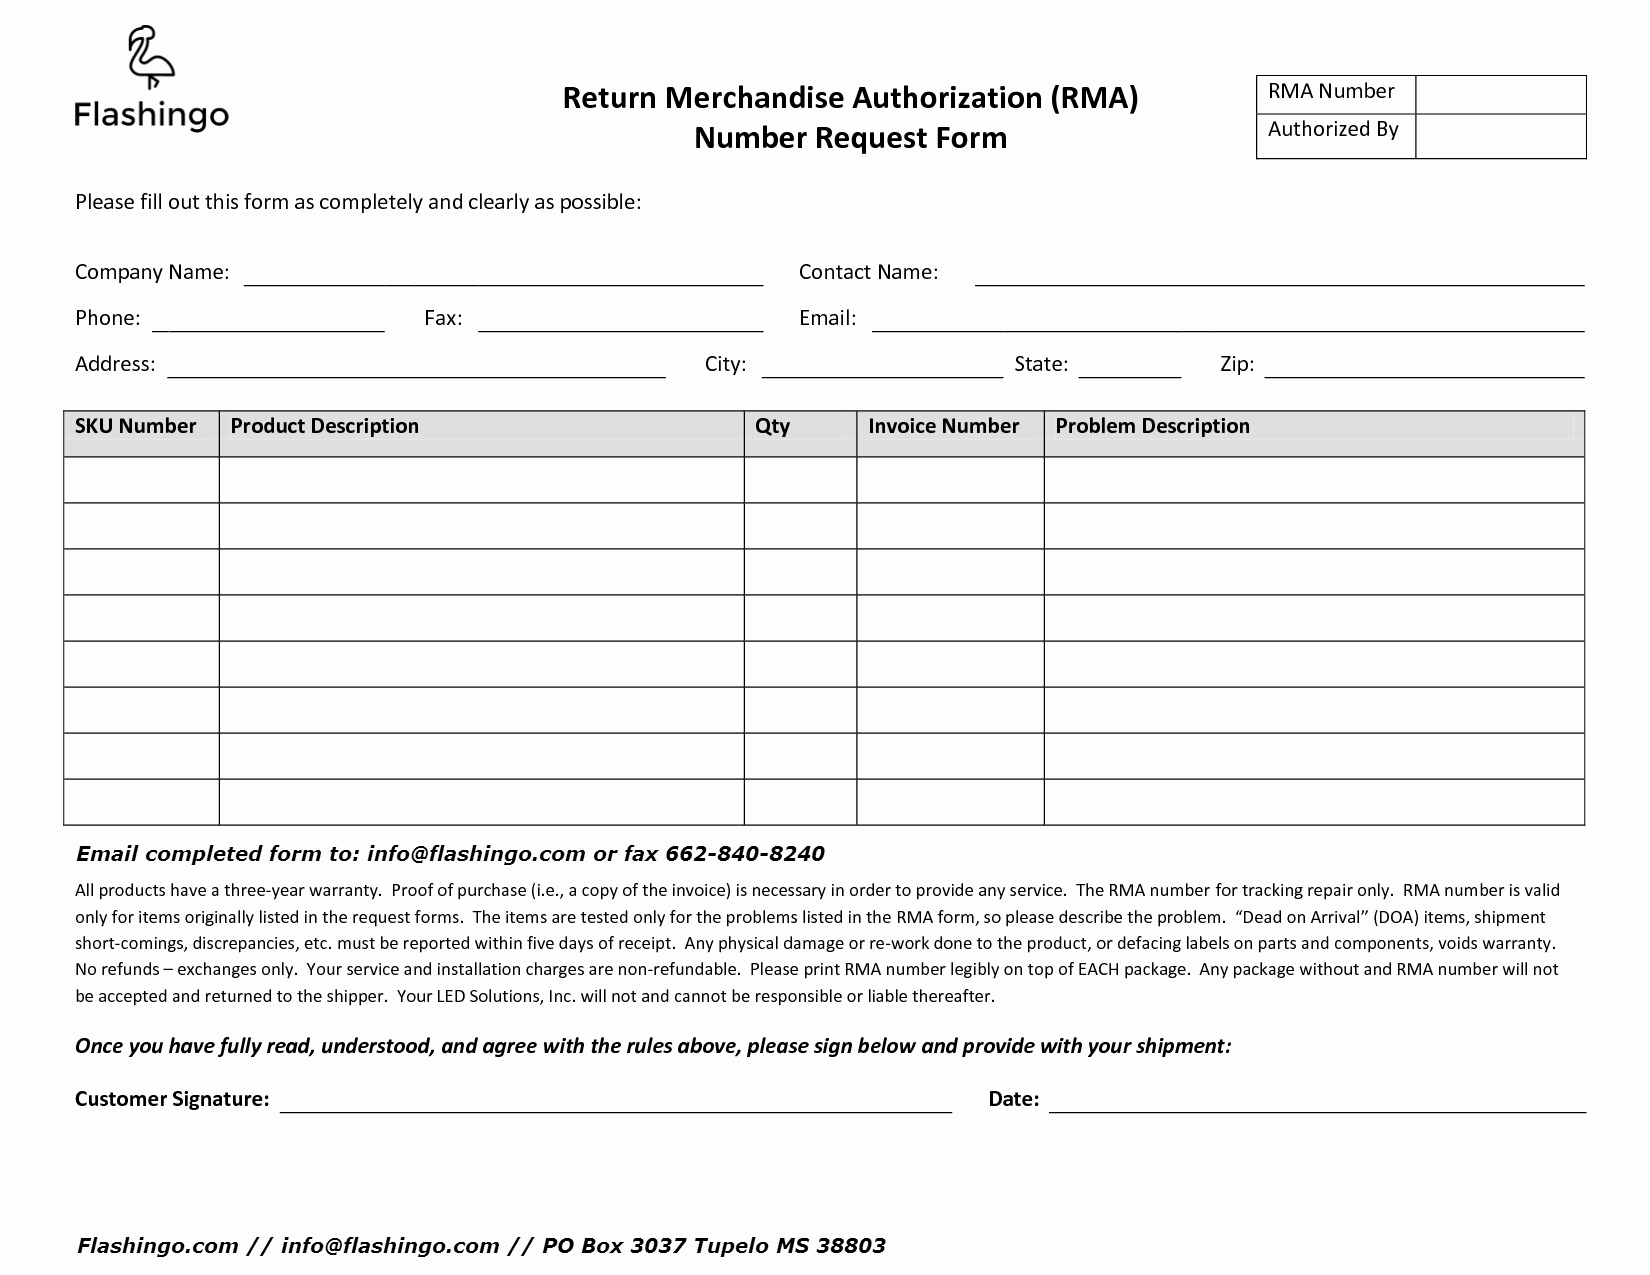 Rma form Template Awesome List Of Synonyms and Antonyms Of the Word Rma form